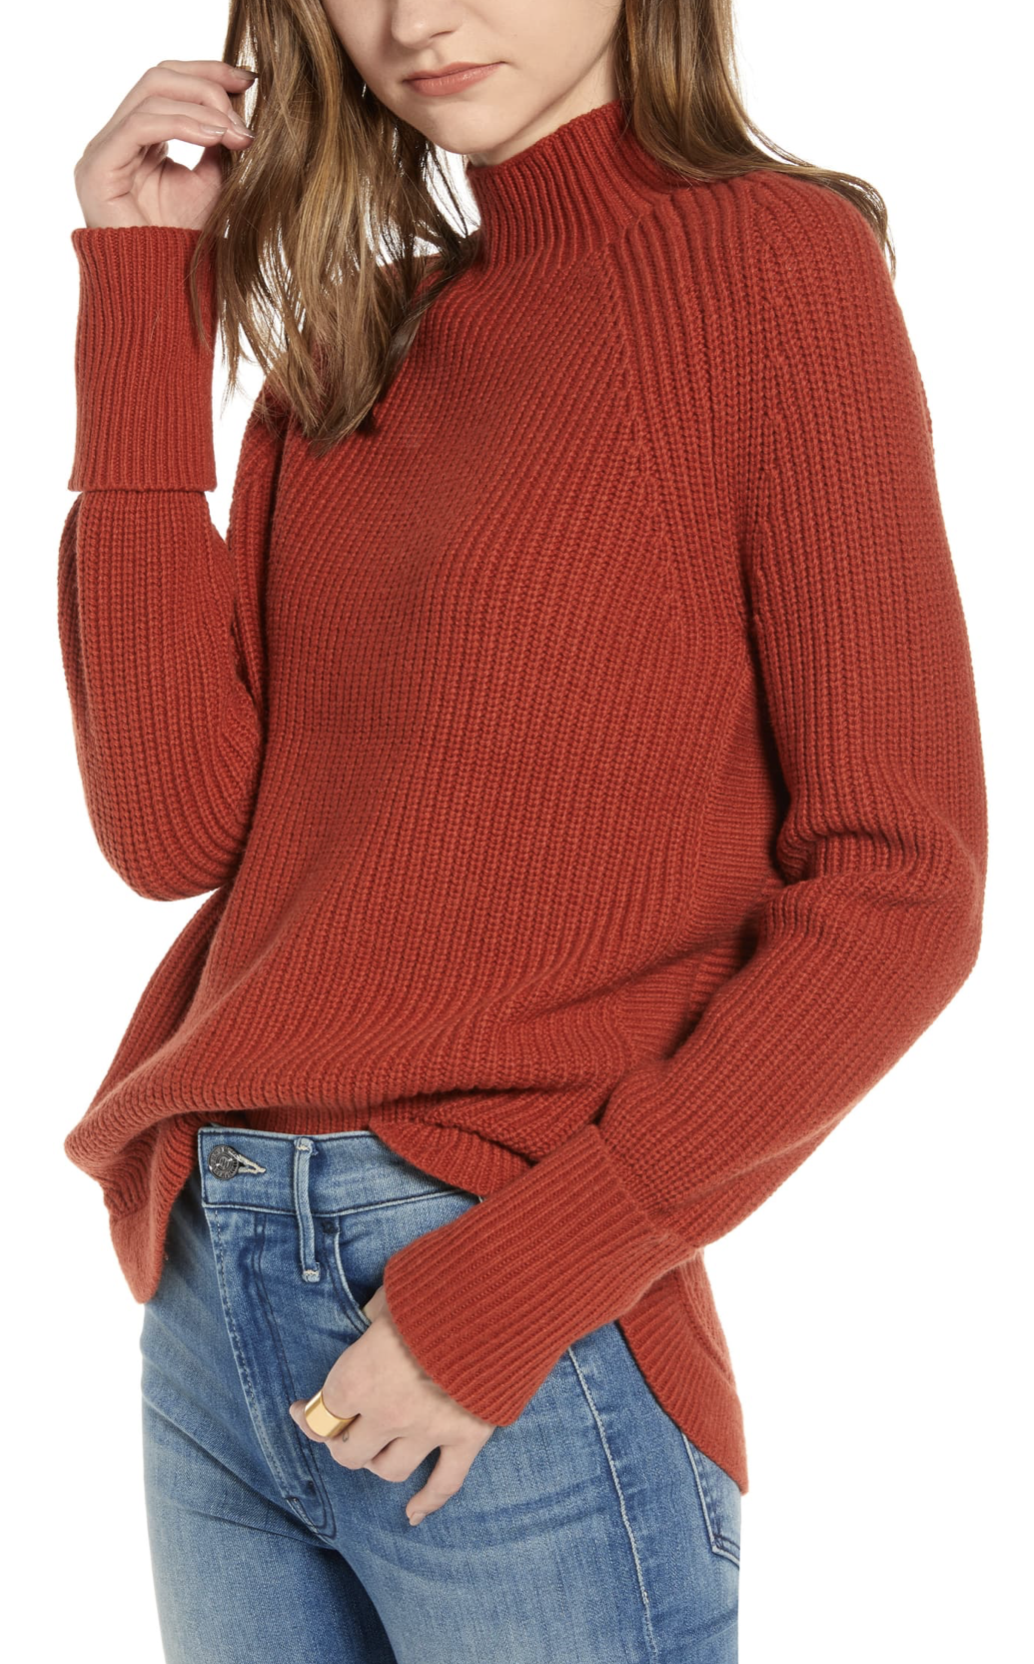 Treasure & Bond Mock Neck Sweater - $49.90